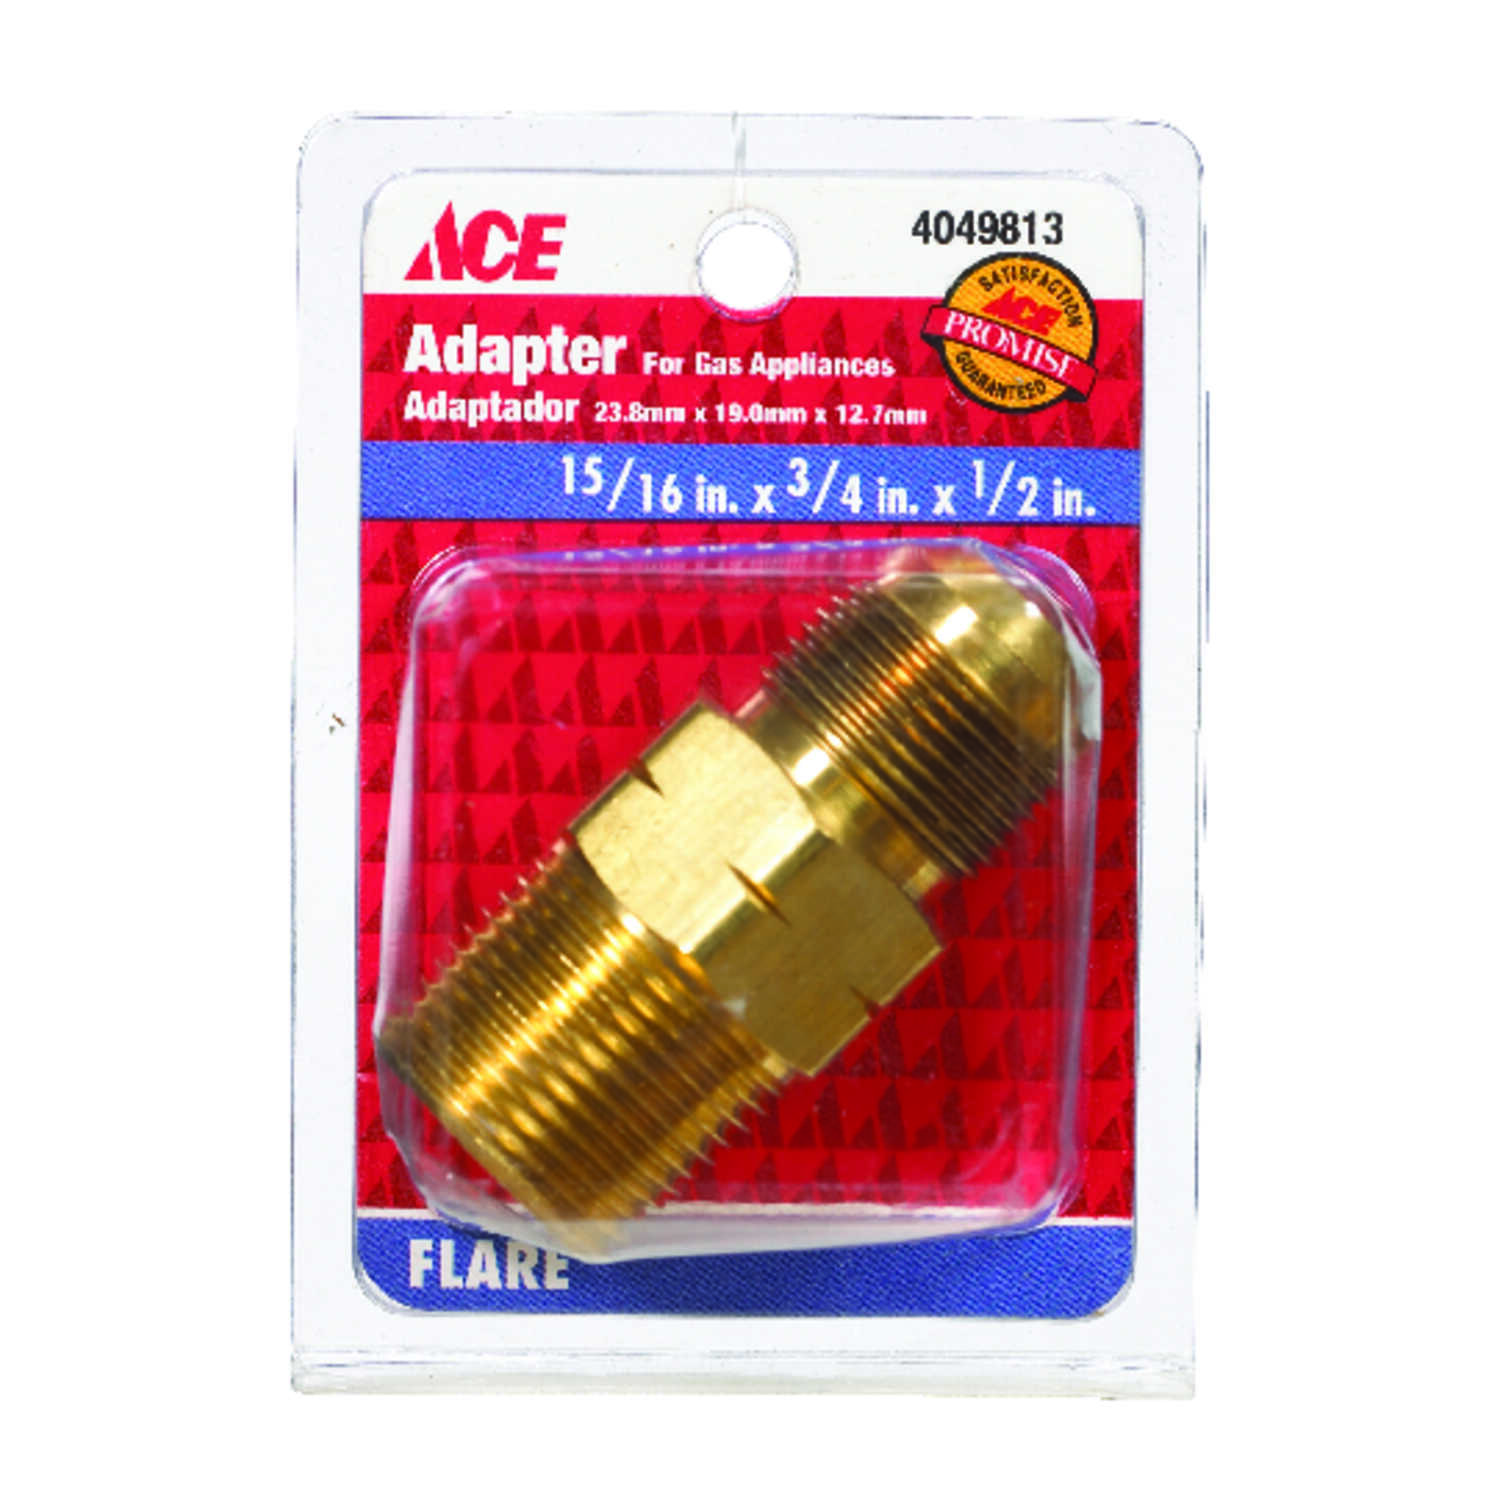 Ace  15/16 in. Flare   x 3/4 in. Dia. Male  Brass  Adapter